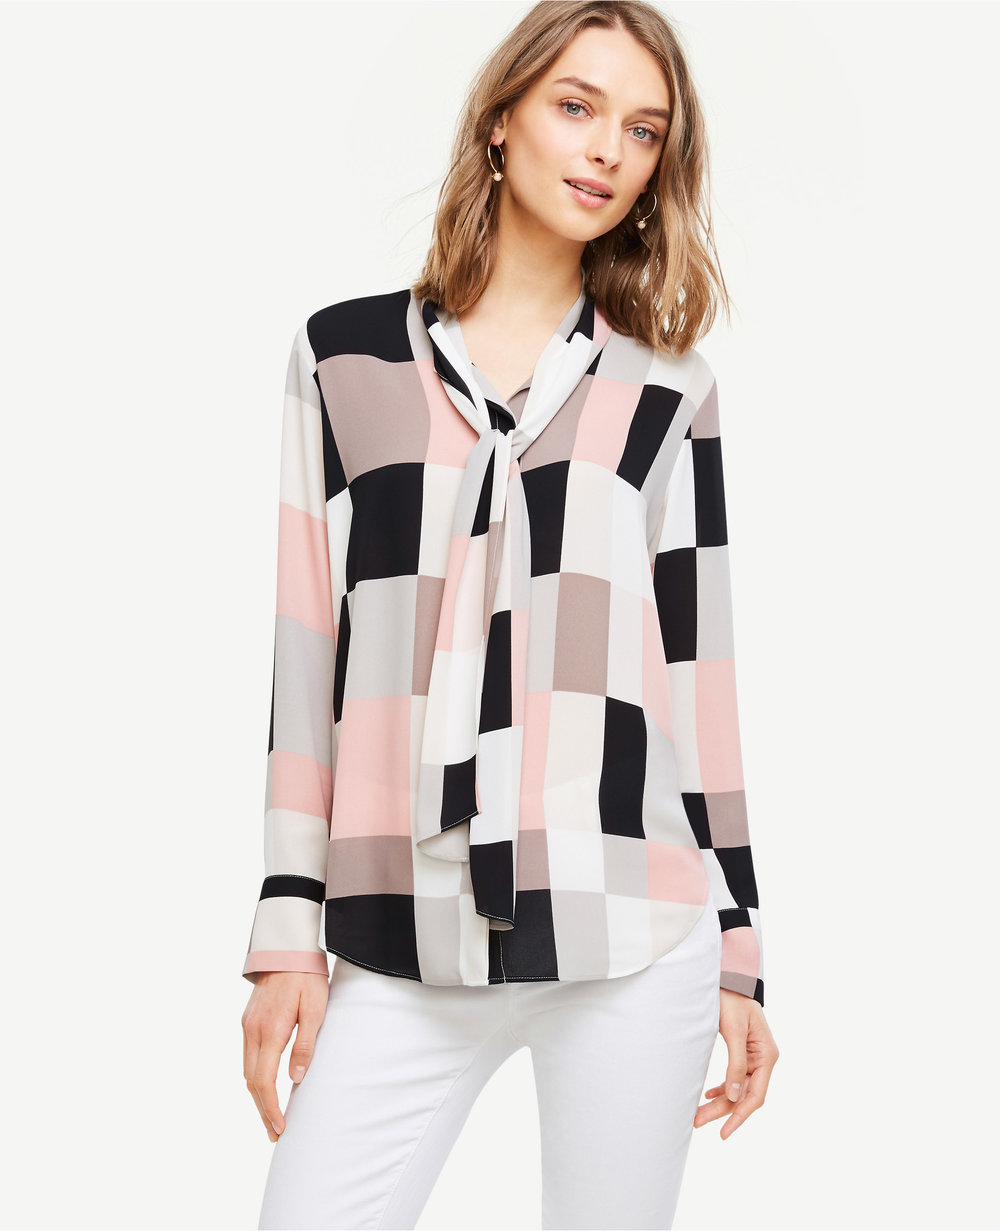 Colorblock Tie Neck Blouse. Was: $79. Now: $64. Additional 50% off with code: CYBER50.